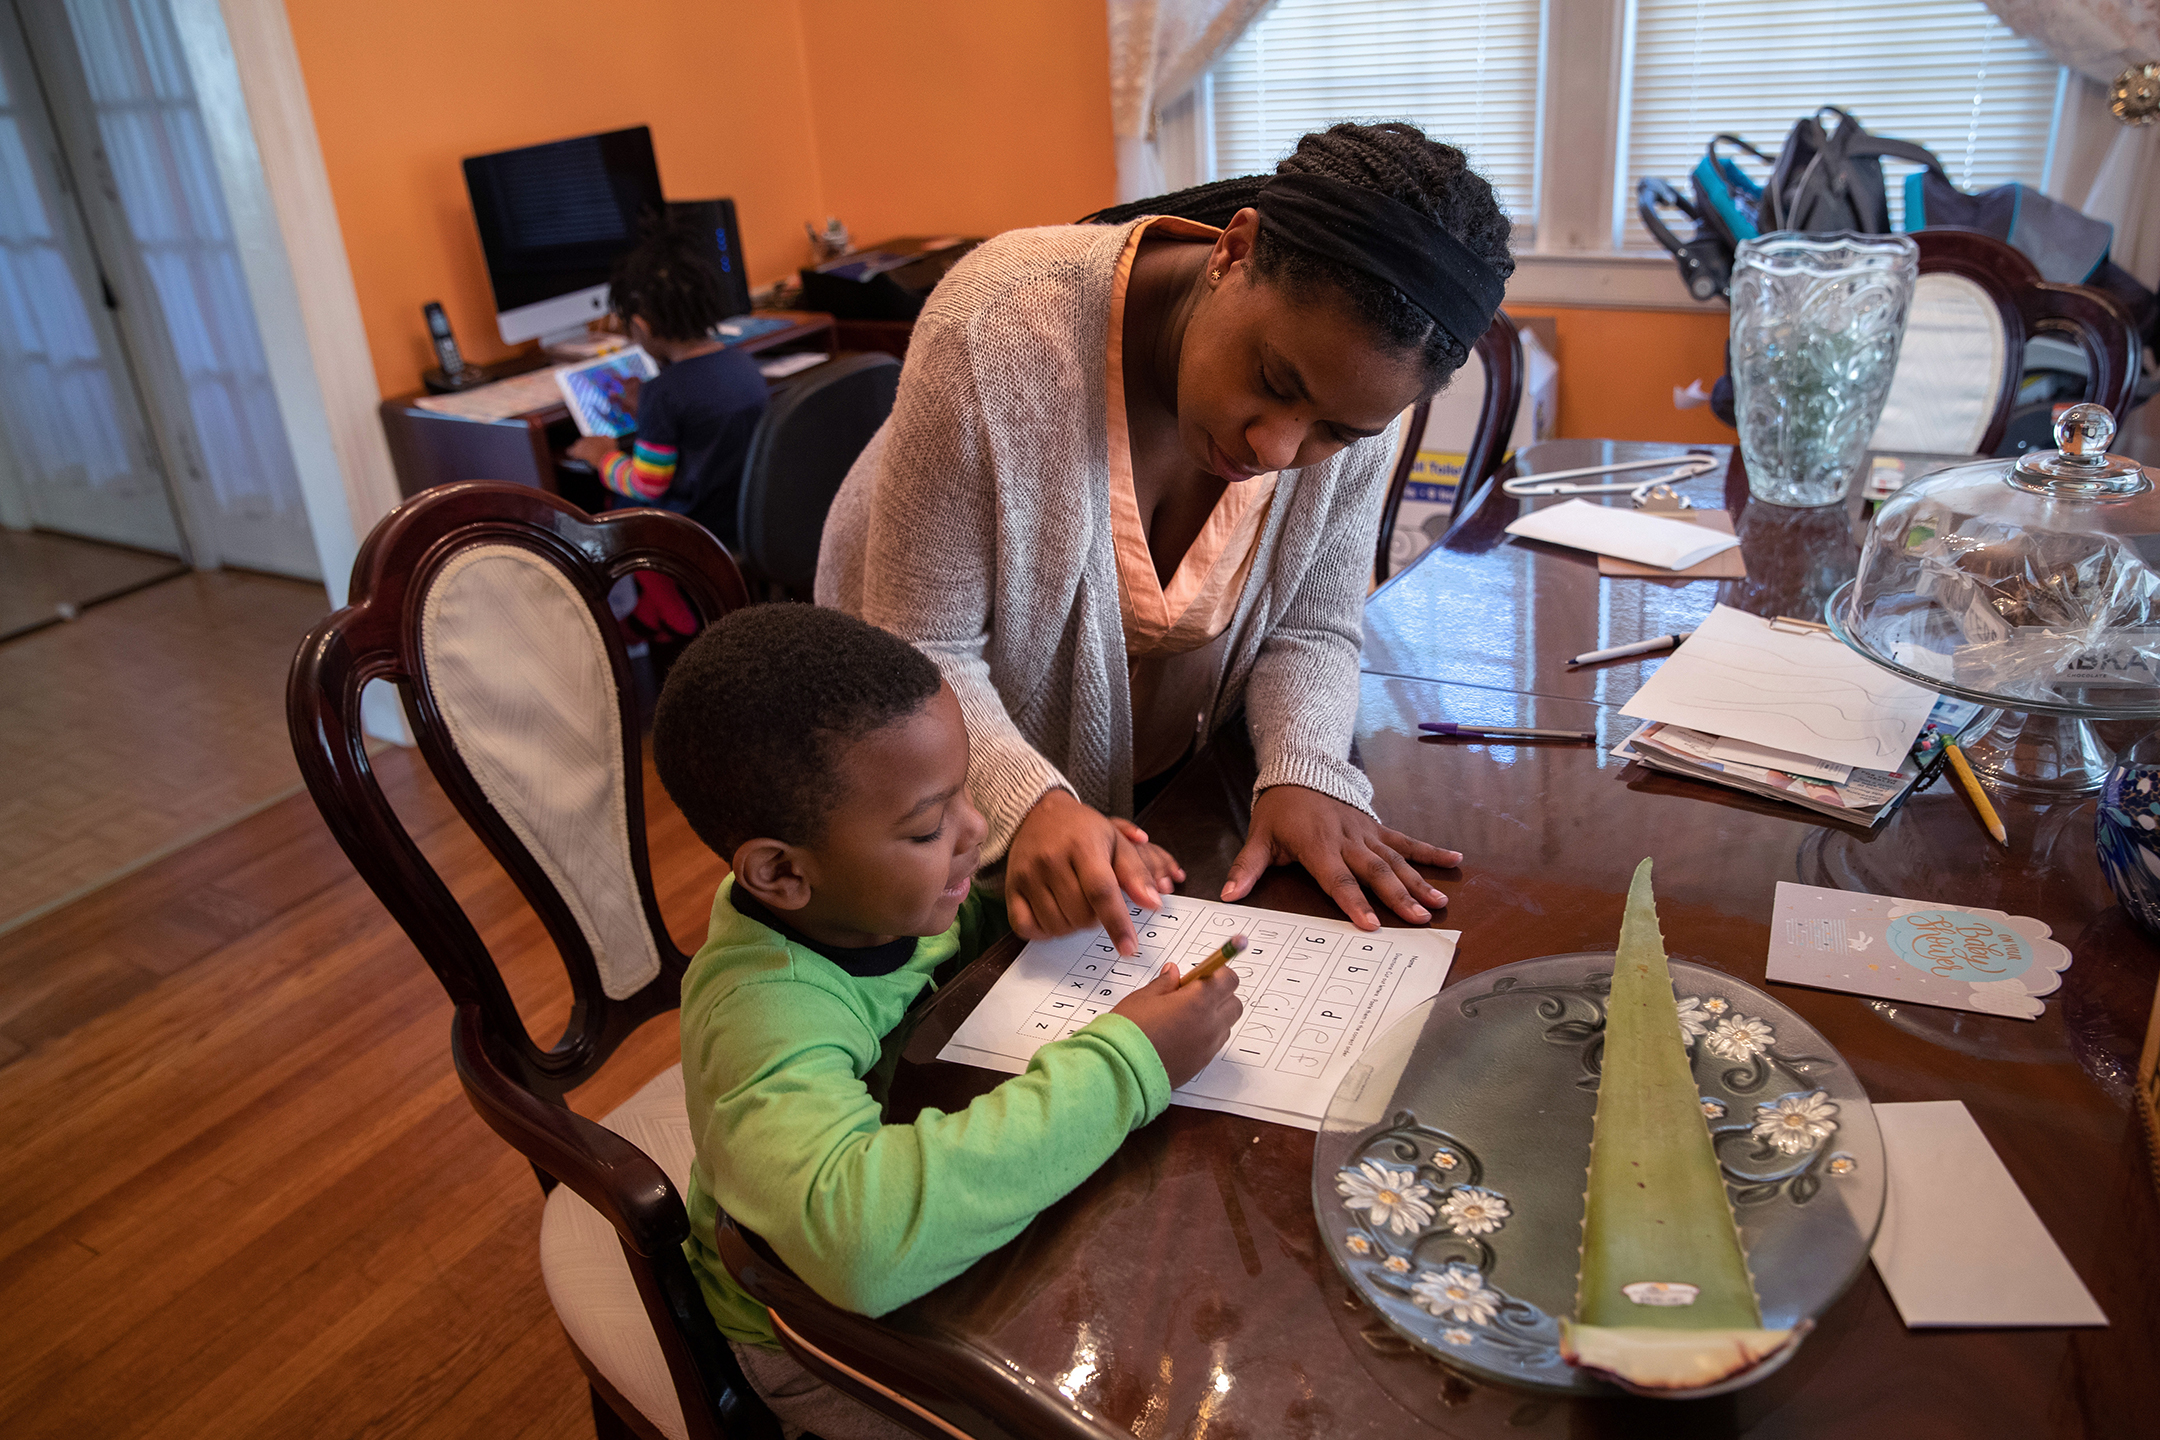 a mother stands with her son, who is seated and doing homework, and points at his school worksheet